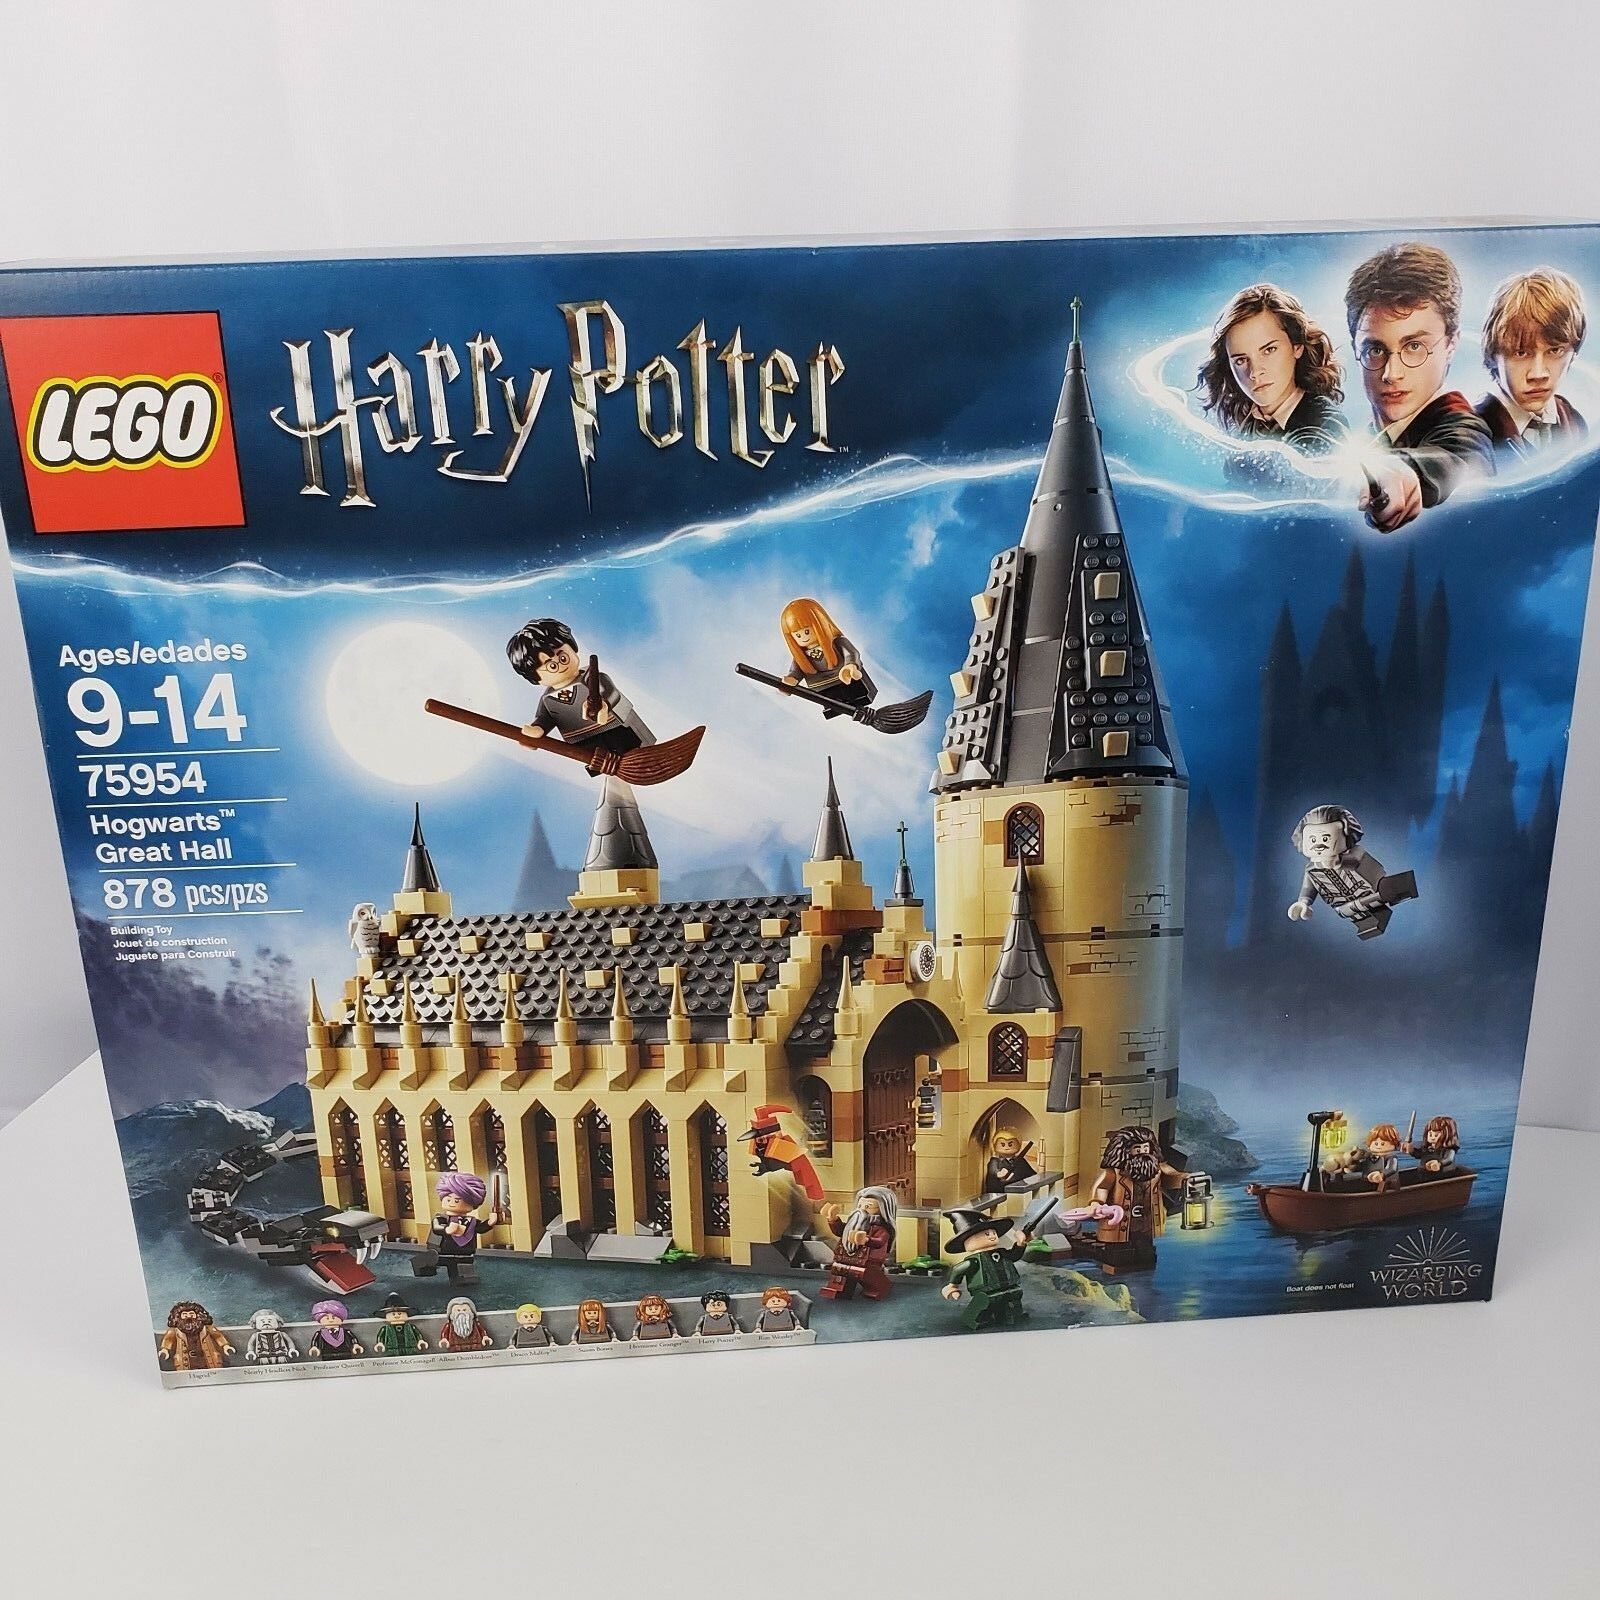 Lego Harry Potter Hogwarts Great Hall Model 75954 878 Pieces Ages 9-14